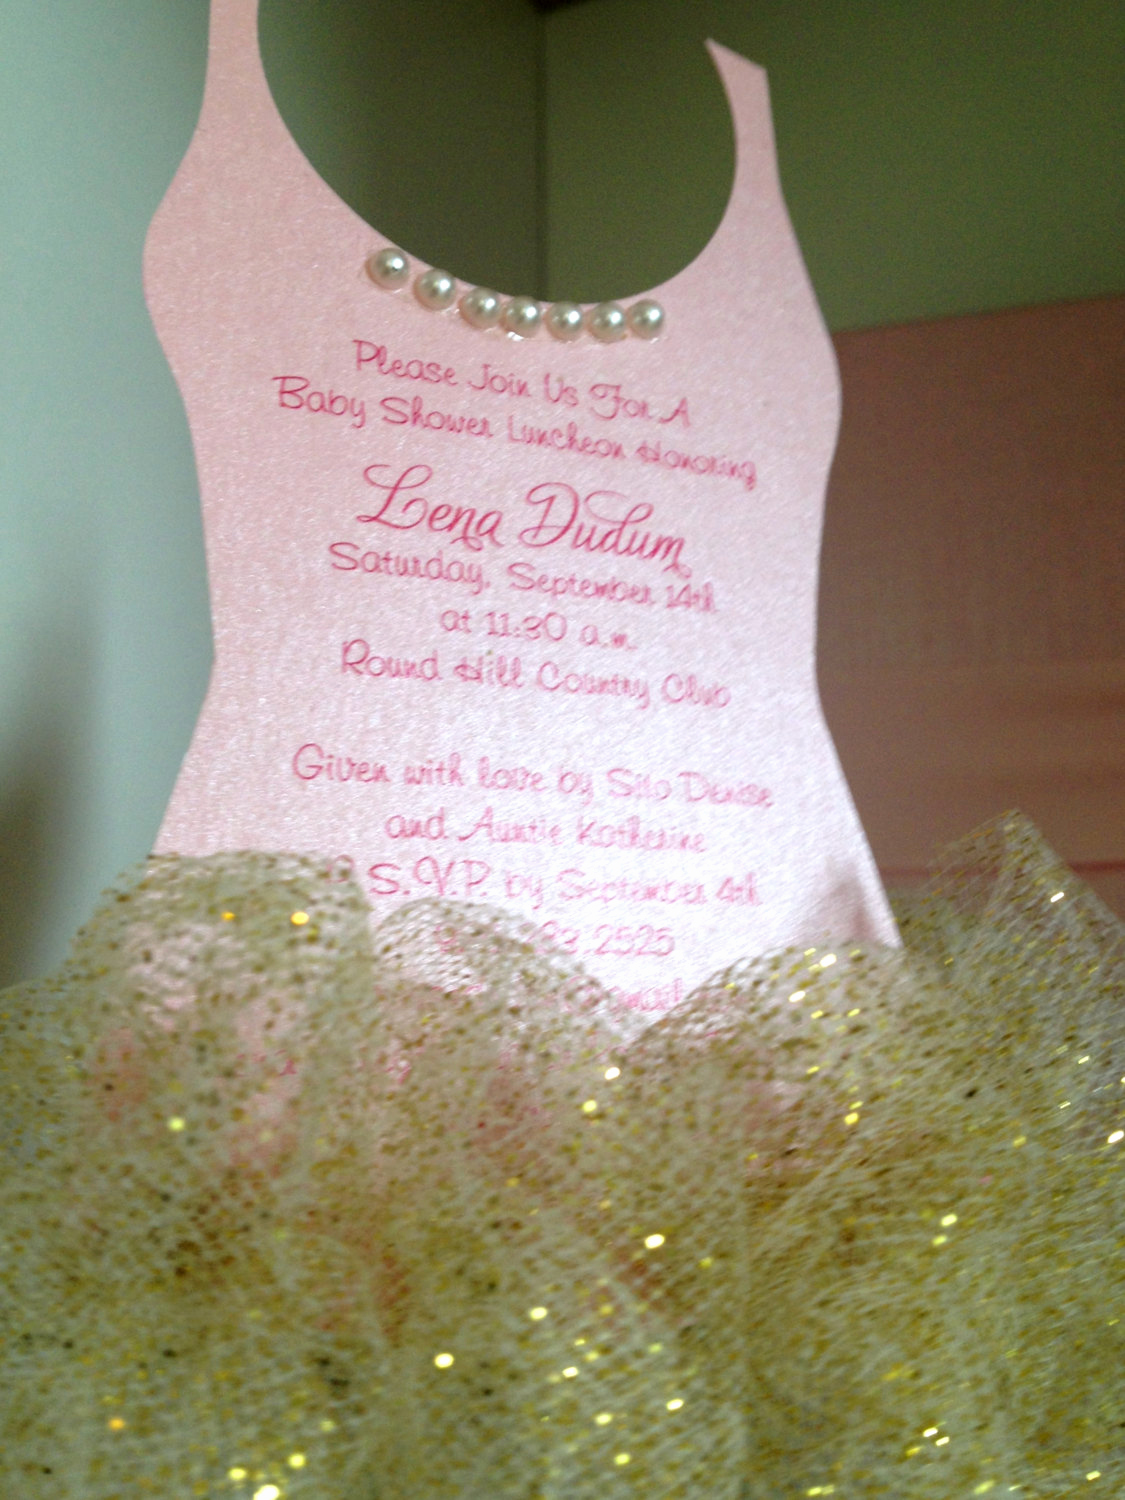 Tutu Baby Shower Invitation Fresh Tutu Baby Shower Invitation Gold Ballerina Baby by Anaderoux